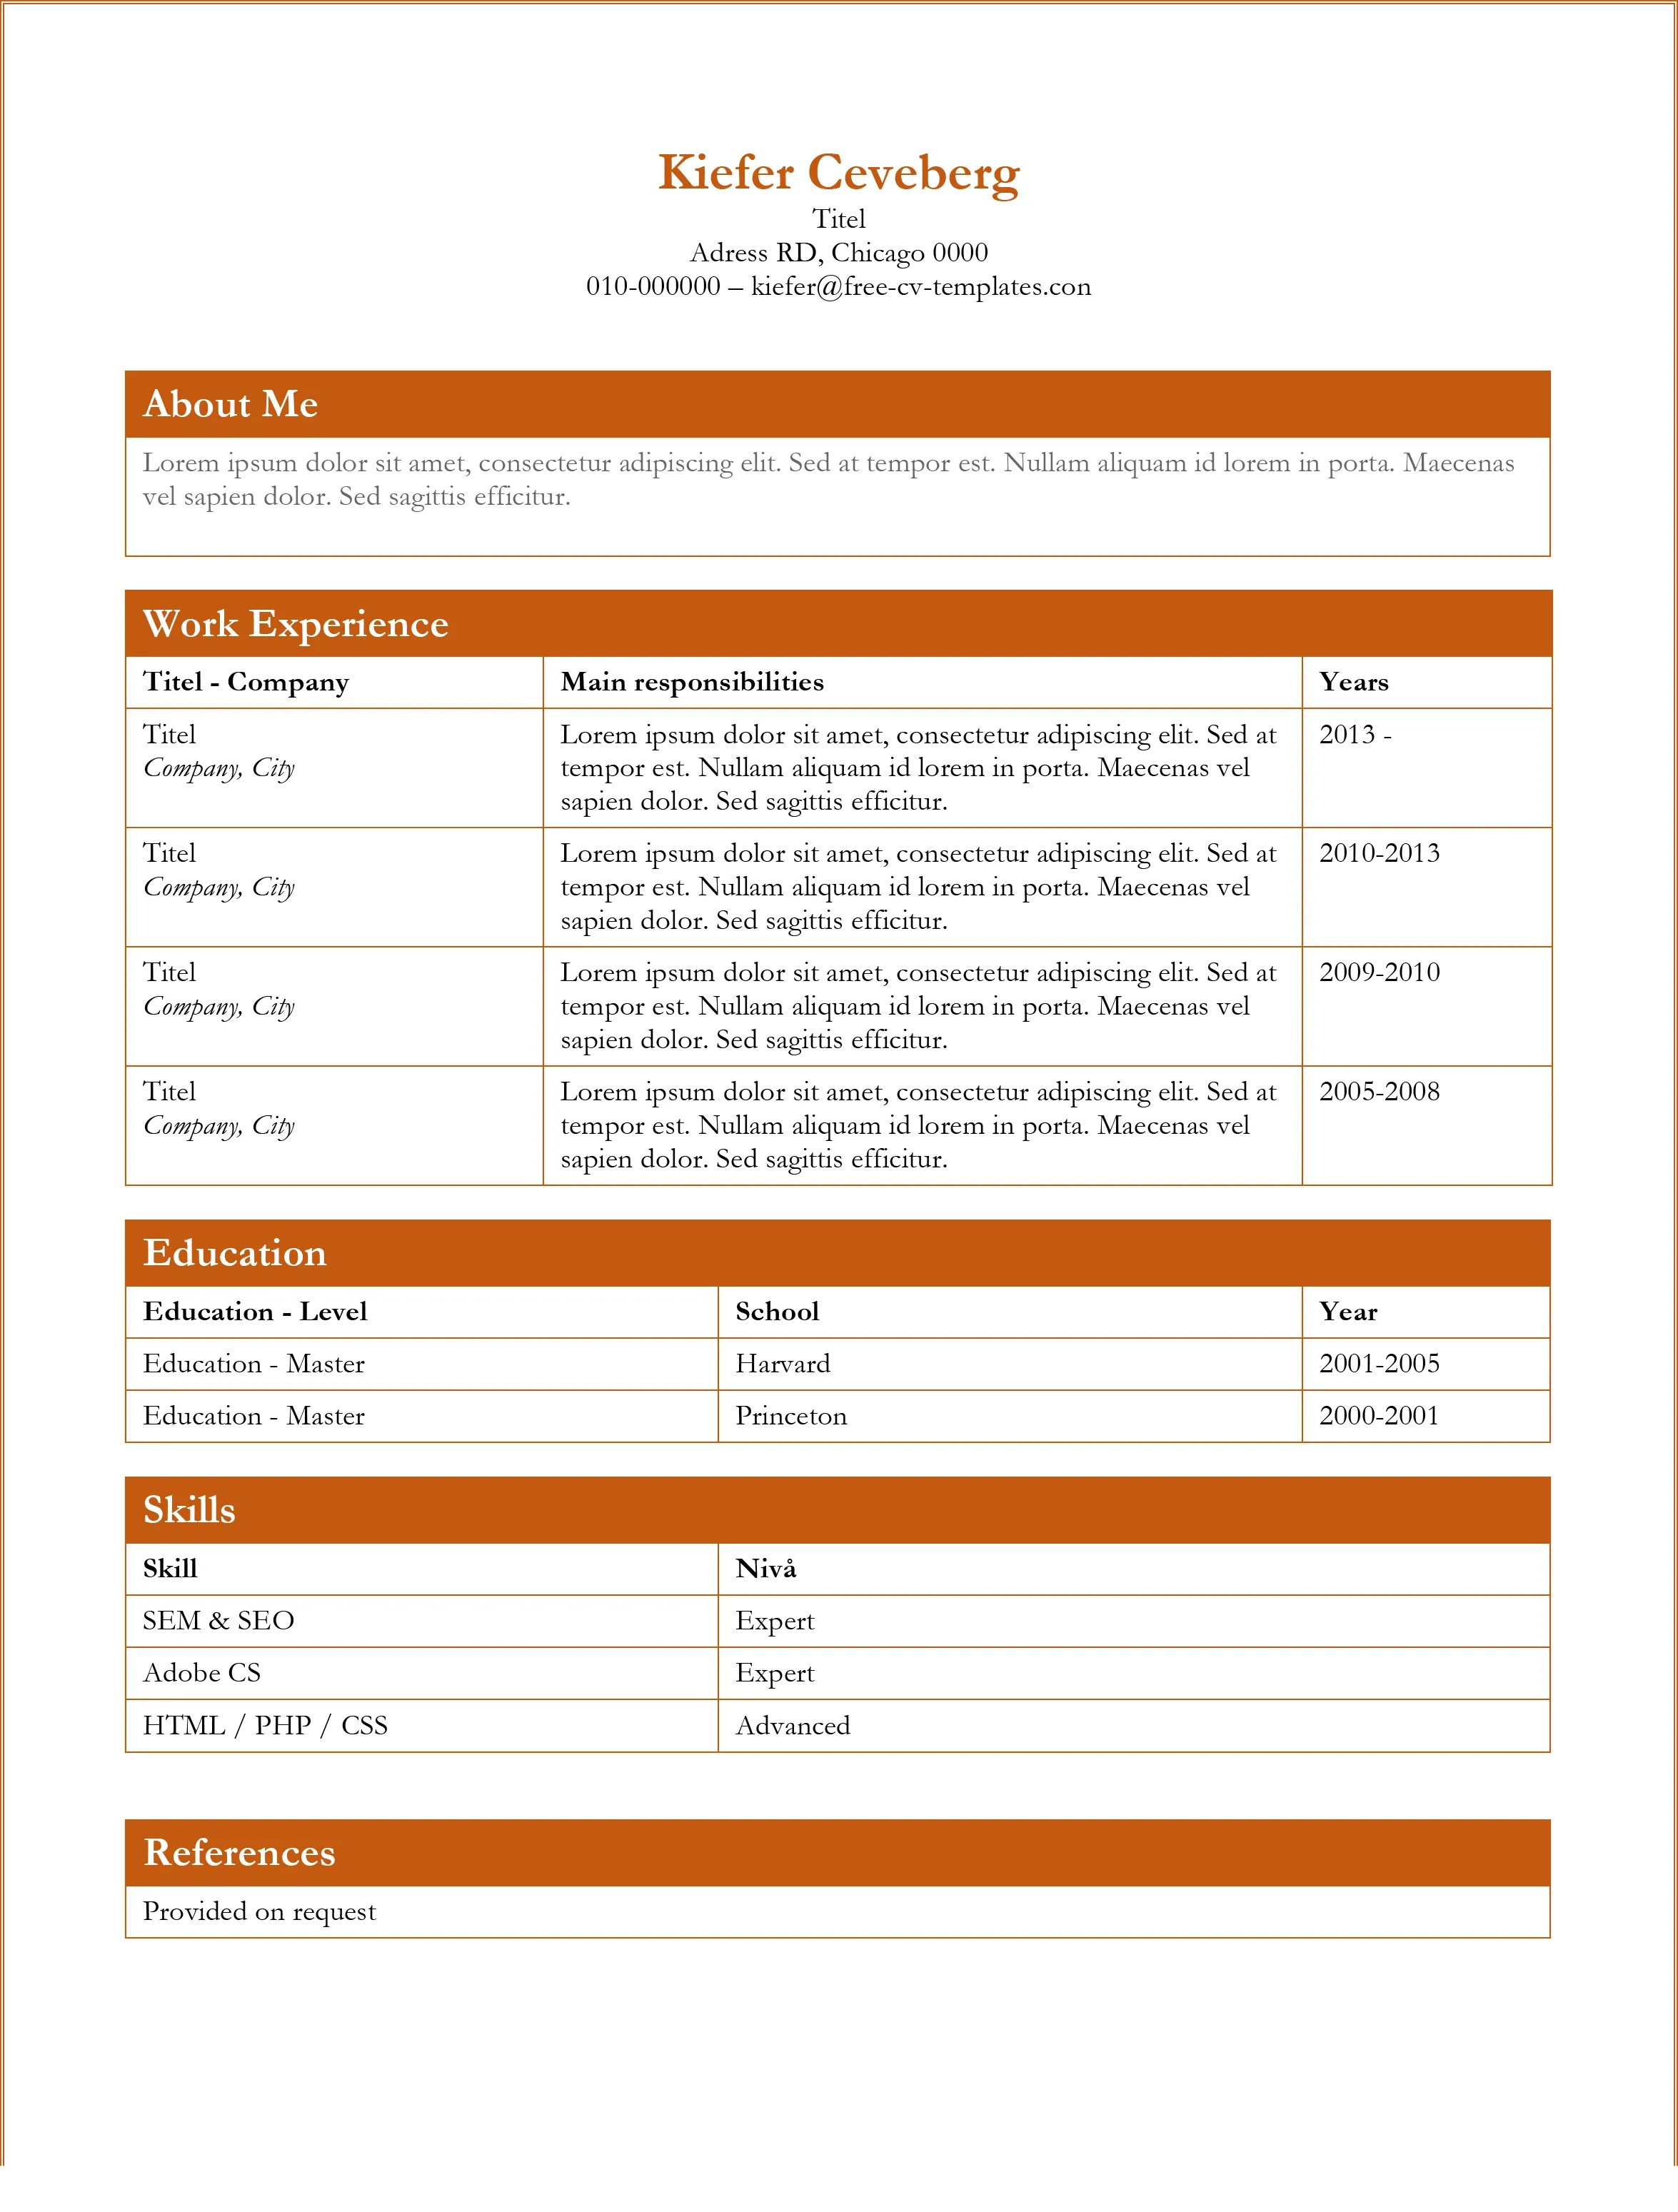 Resume Template In Microsoft Word 2017 Cv And Resume Templates Word Indesign Illustrator Photoshop